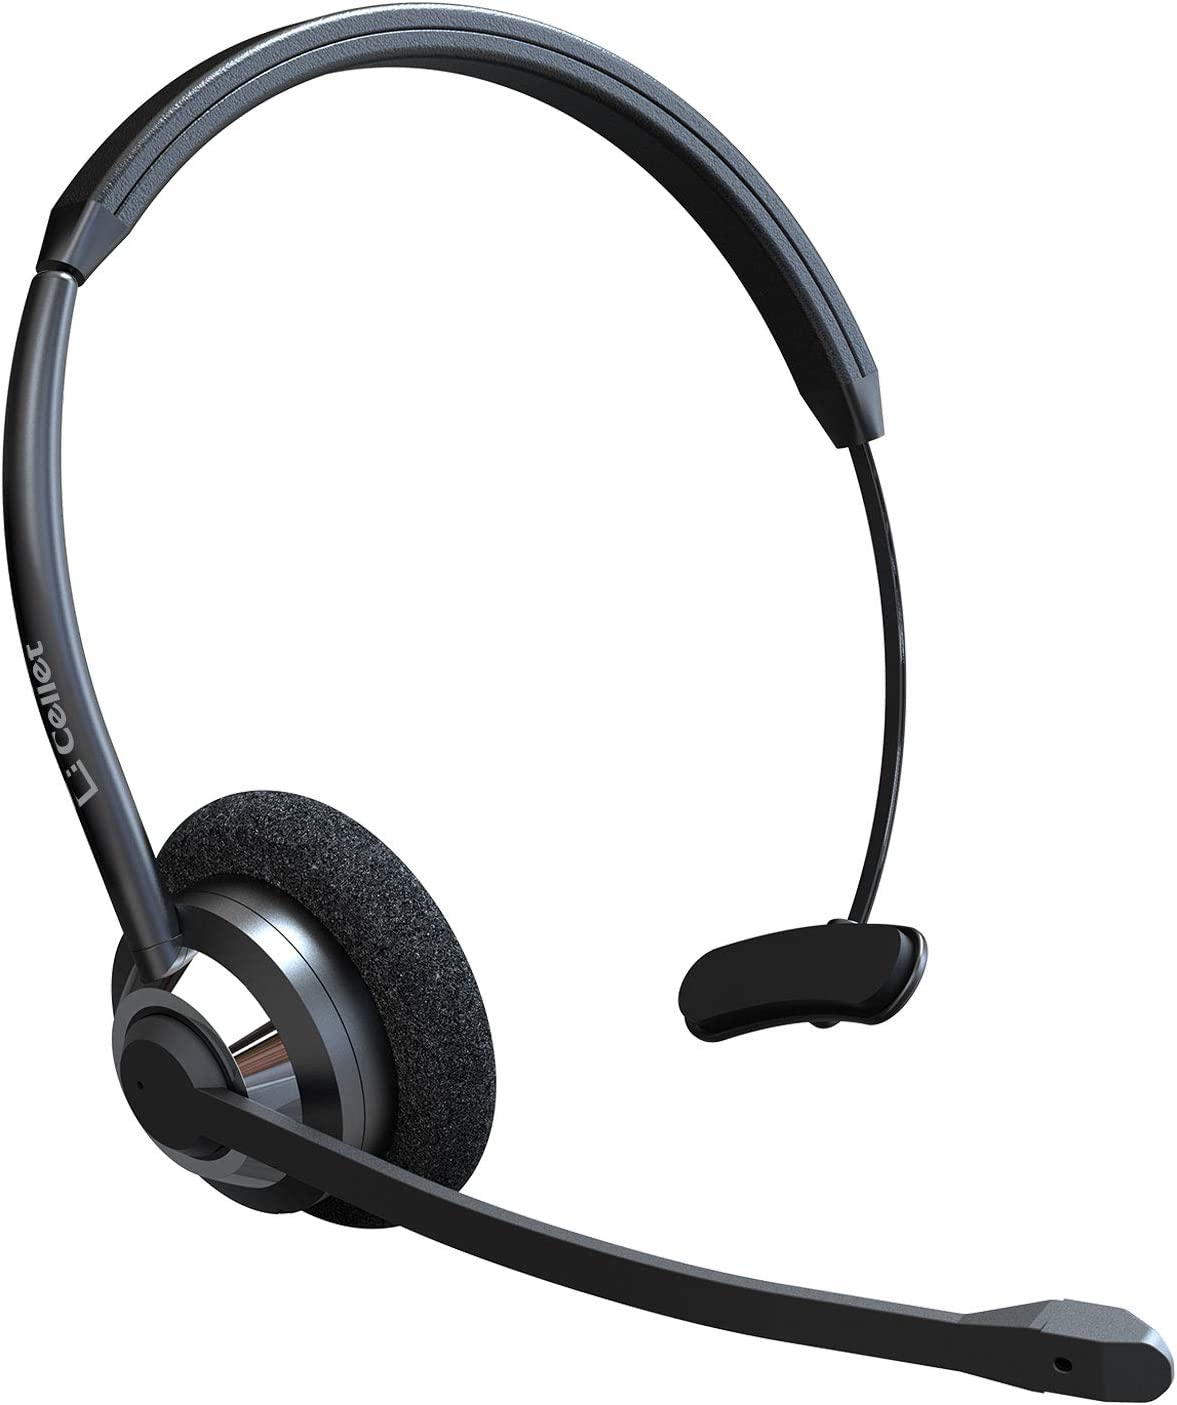 Cellet Hands Free Wireless Bluetooth Headset Noise Cancelling Adjustable On Ear Piece with Boom Microphone Ideal for Office Truck Drivers Travel Work Customer Service Call Center